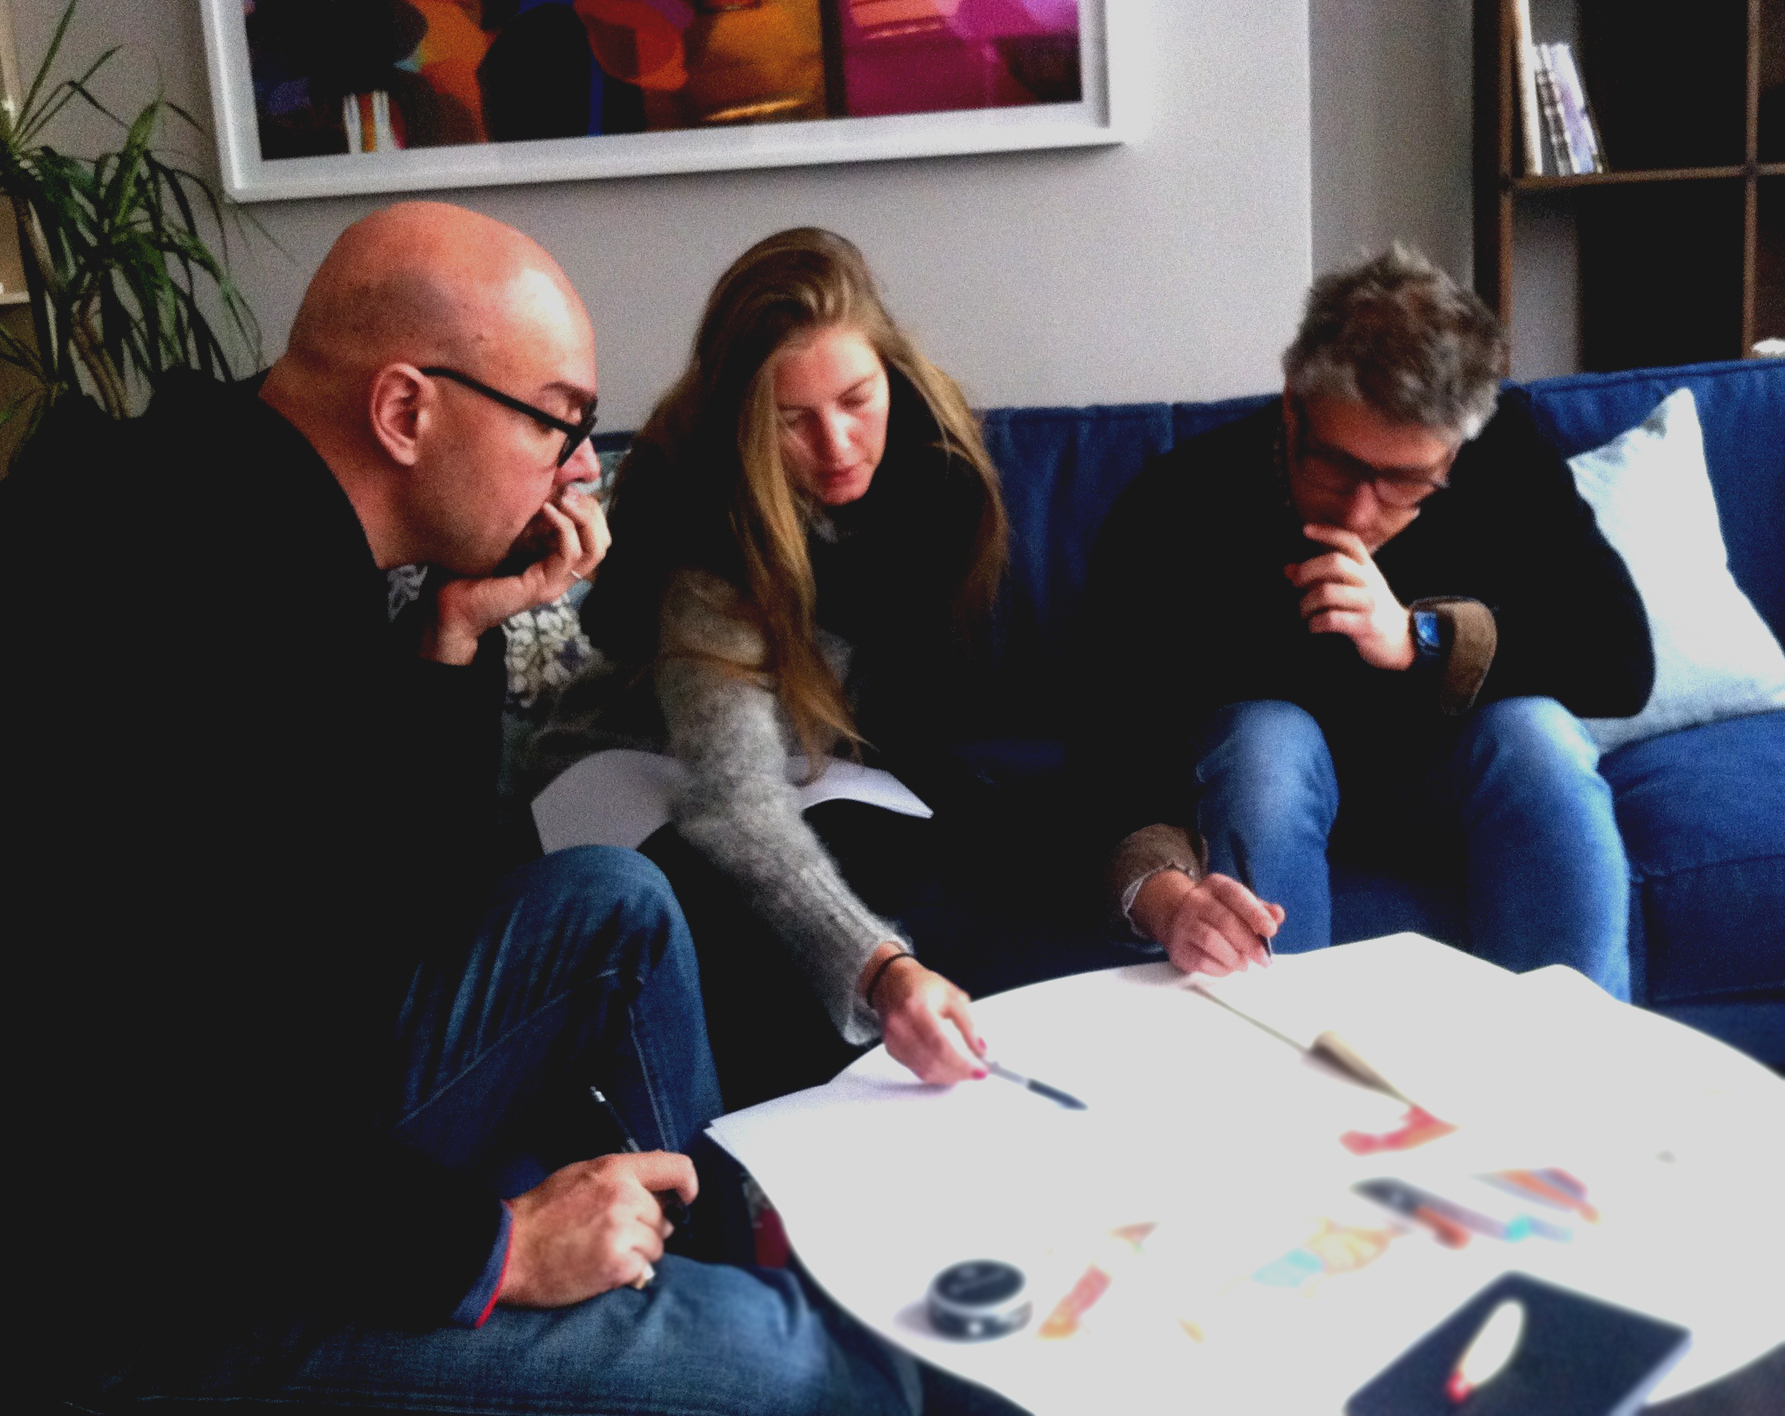 2 Days To Go The Sofa Crowd crafting Workshop In New